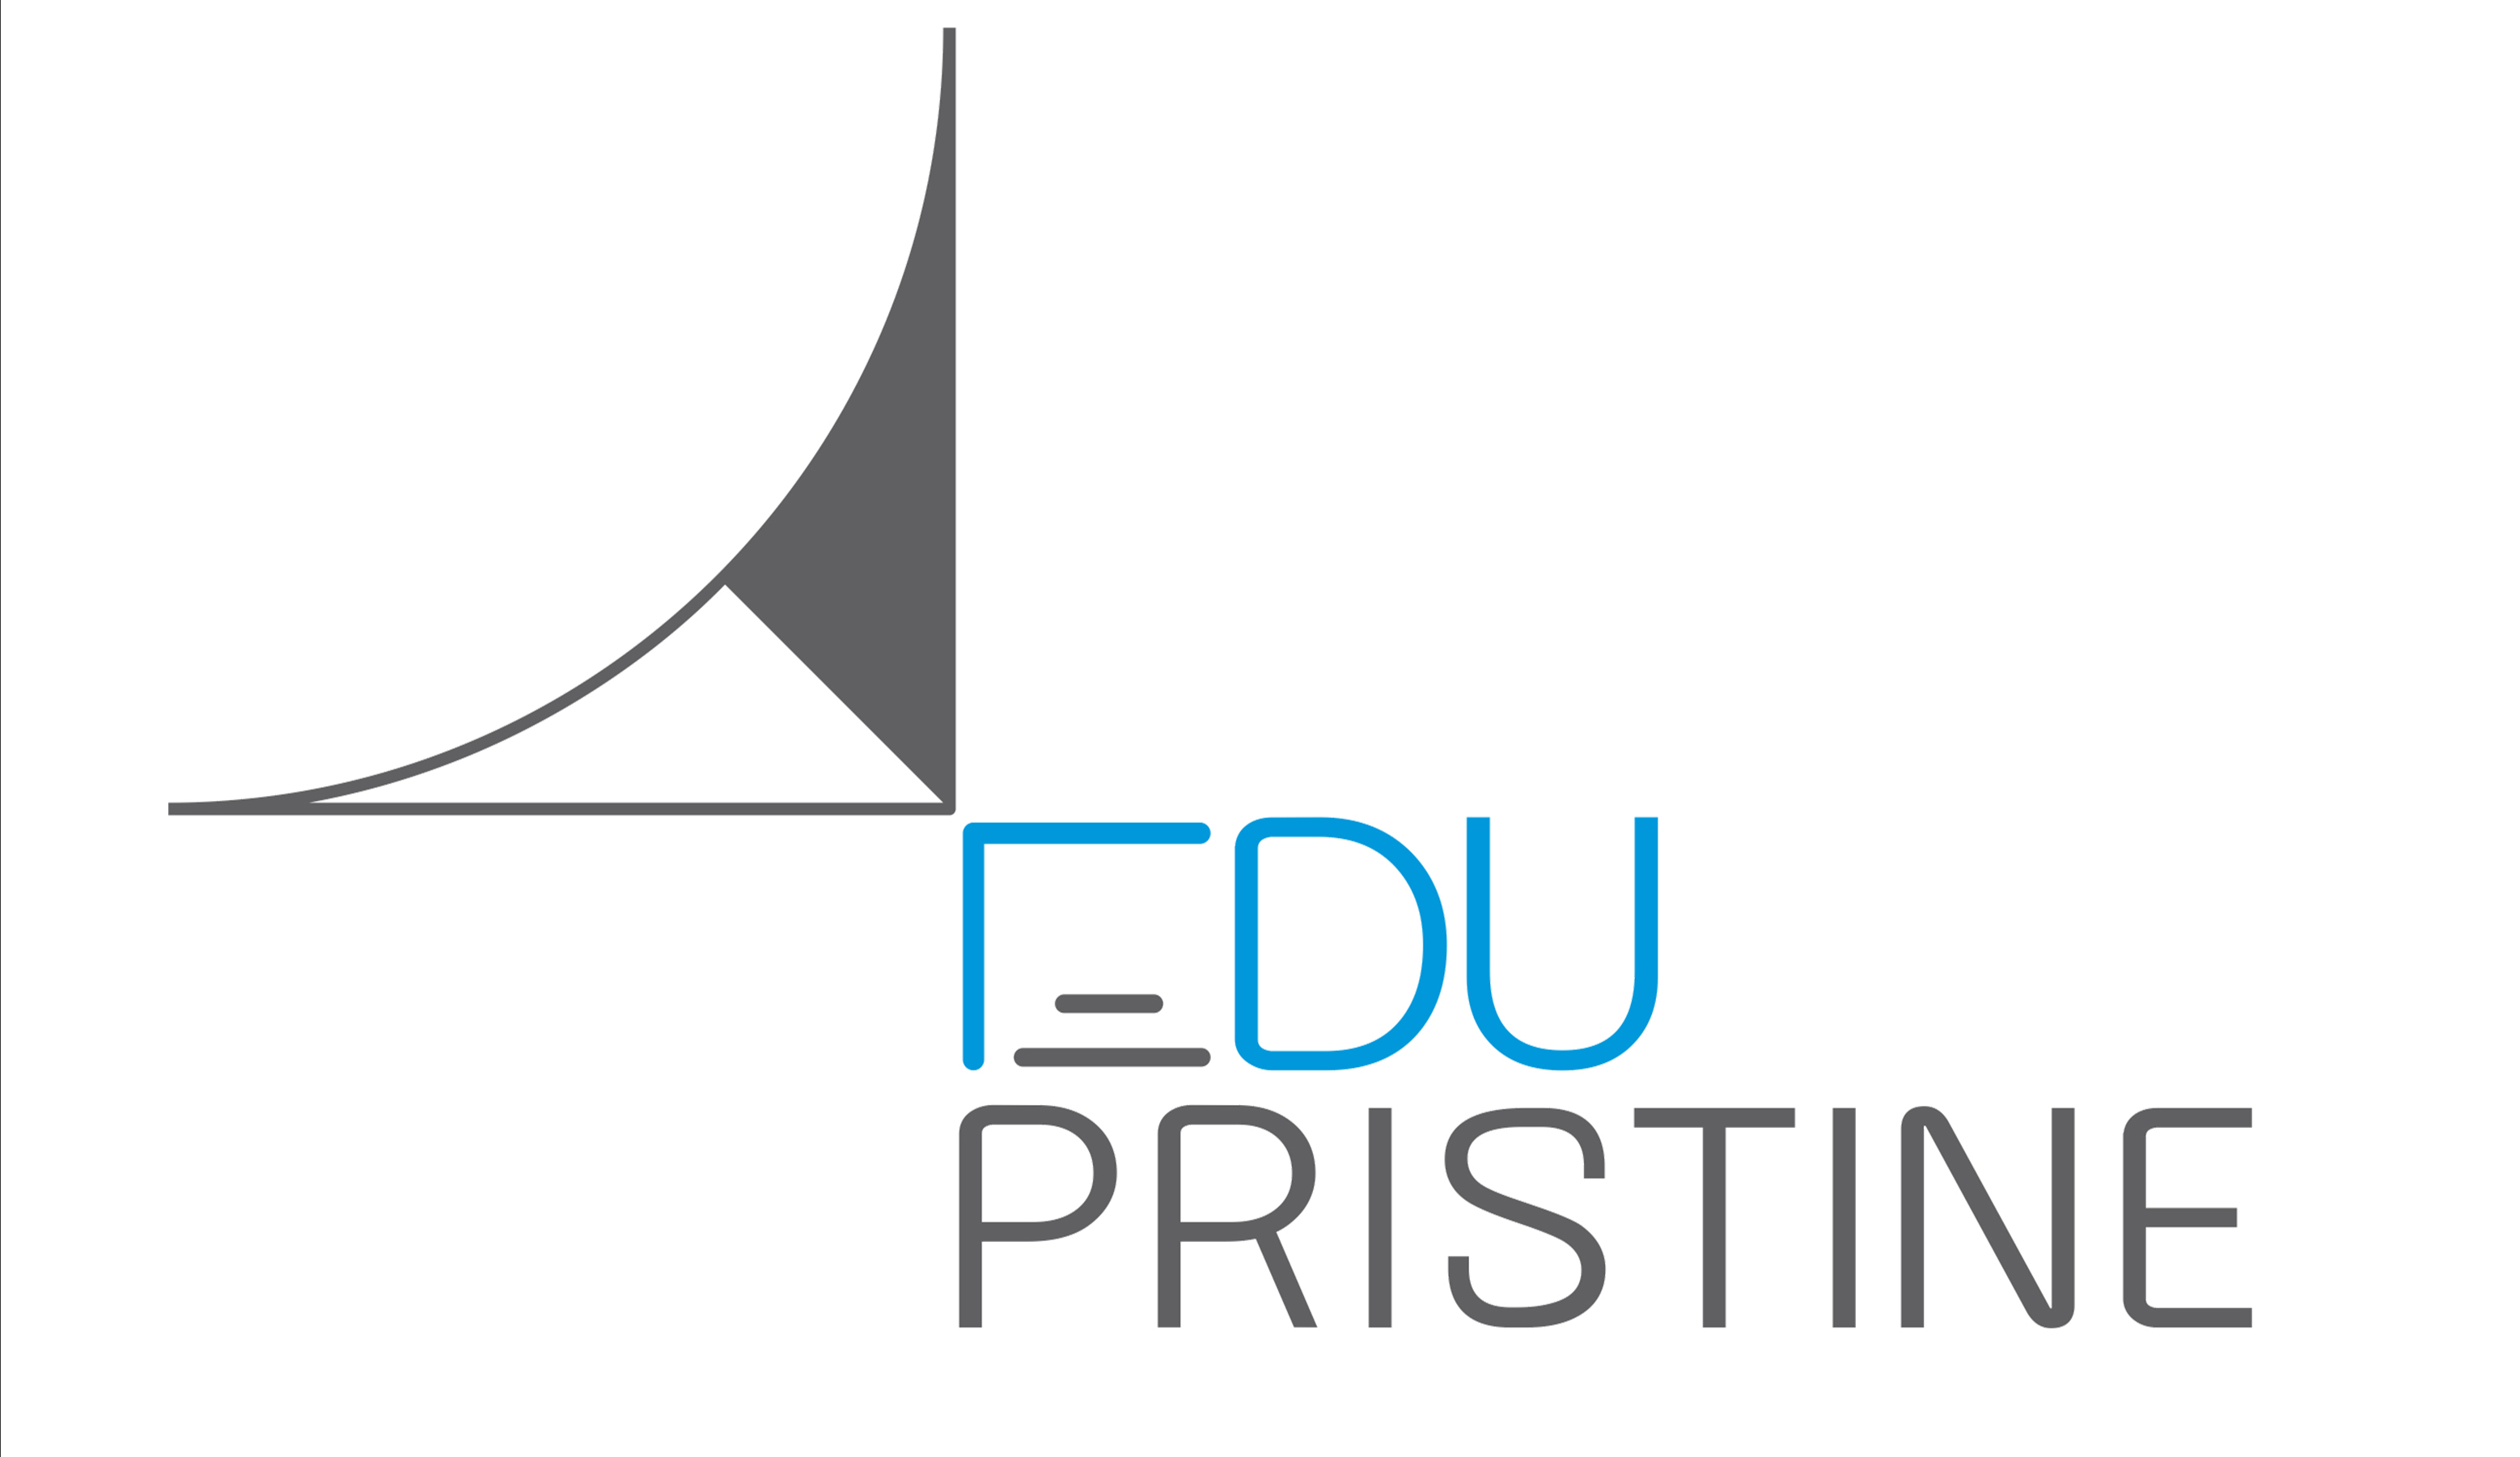 More about EduPristine Inc.